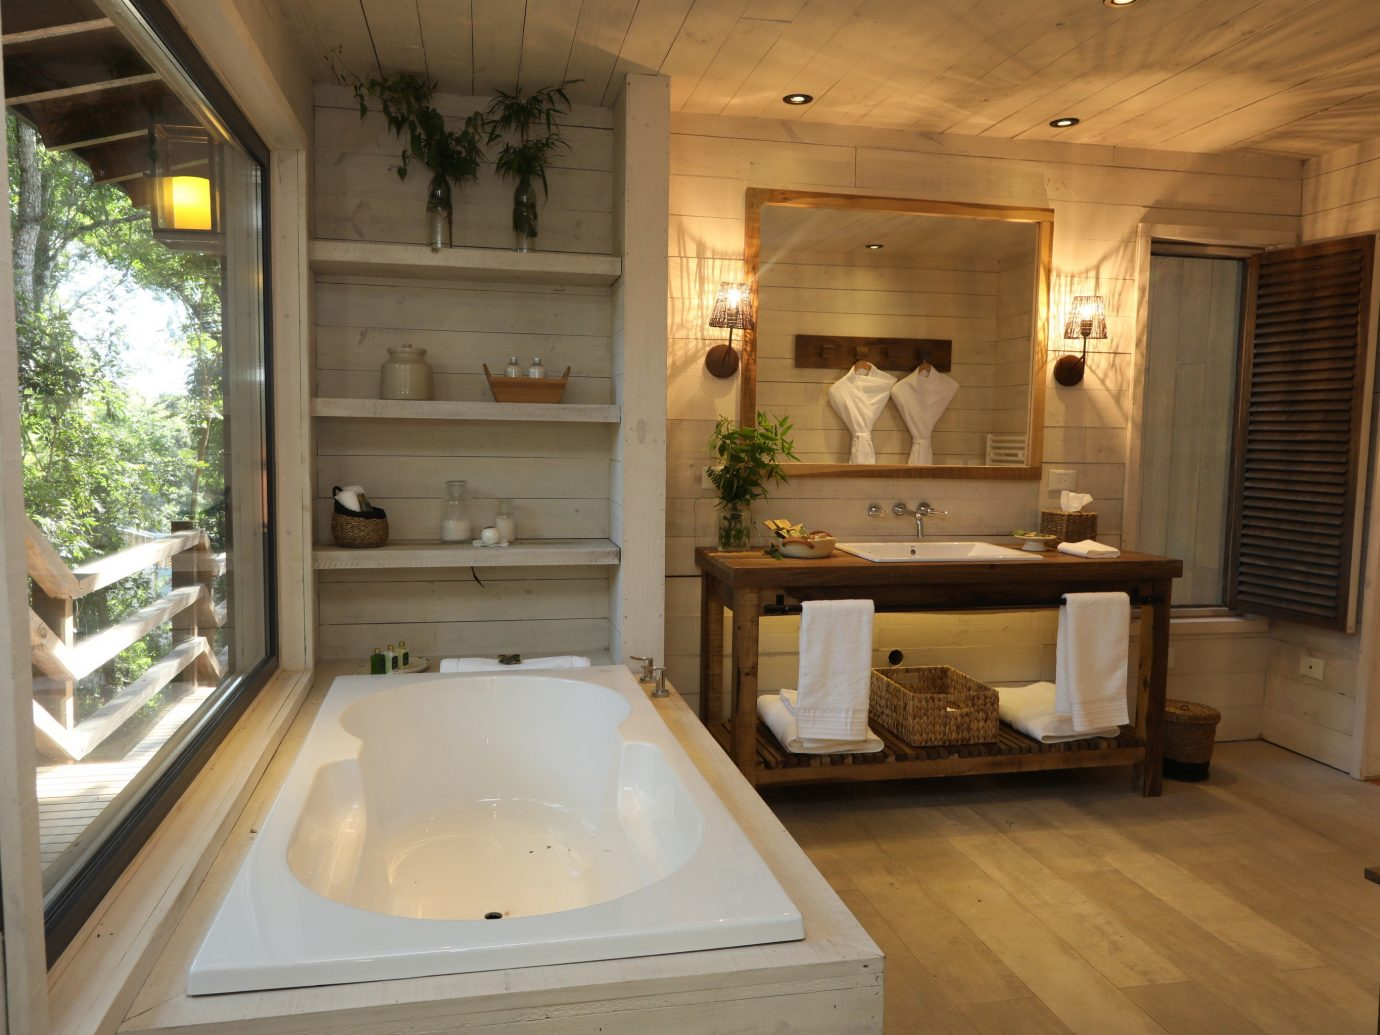 Hotels Outdoors + Adventure indoor window floor room bathroom interior design estate house tub